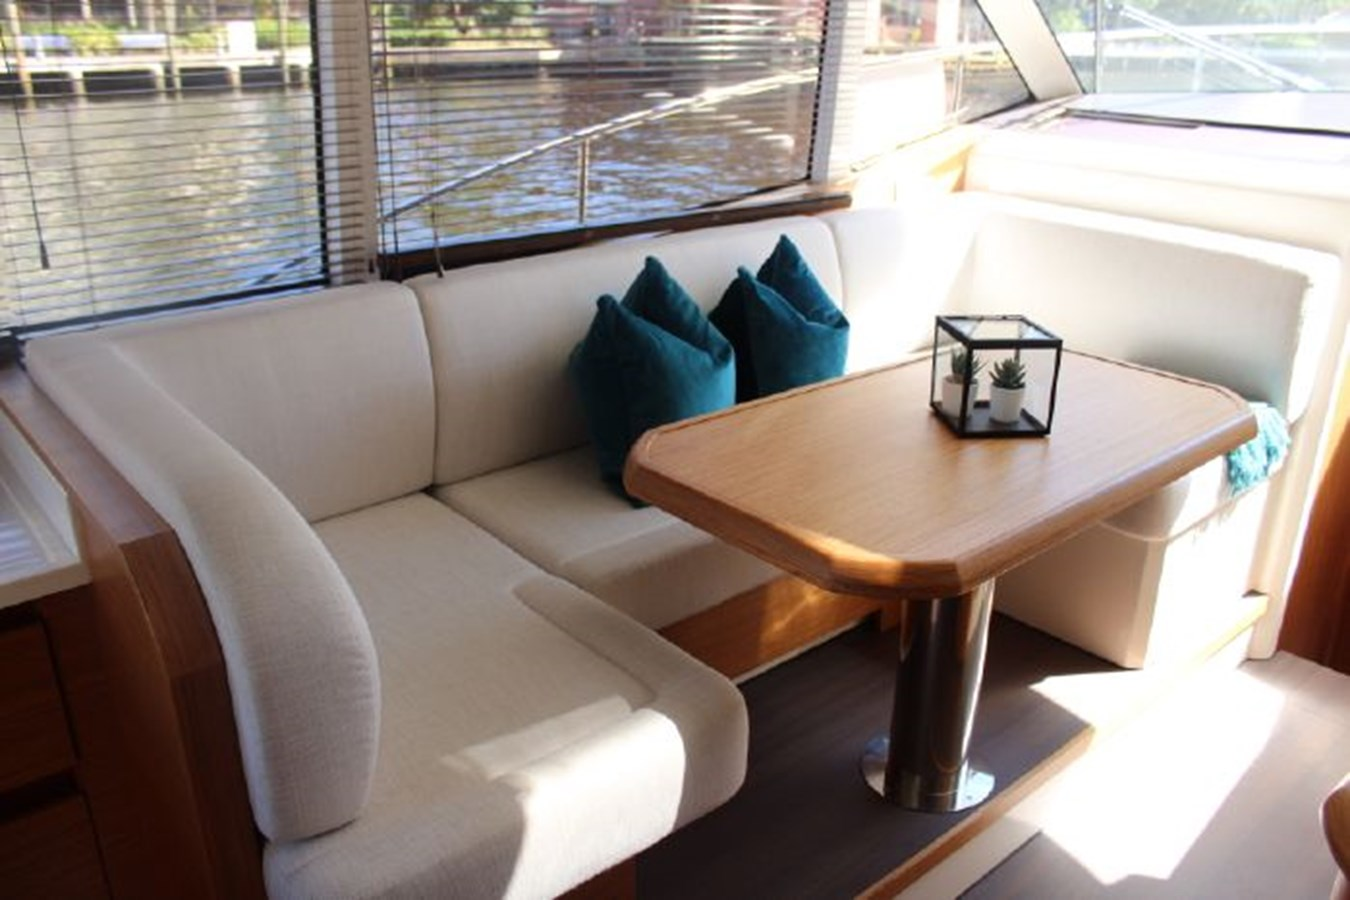 2019 GREENLINE 39 HYBRID yacht for sale